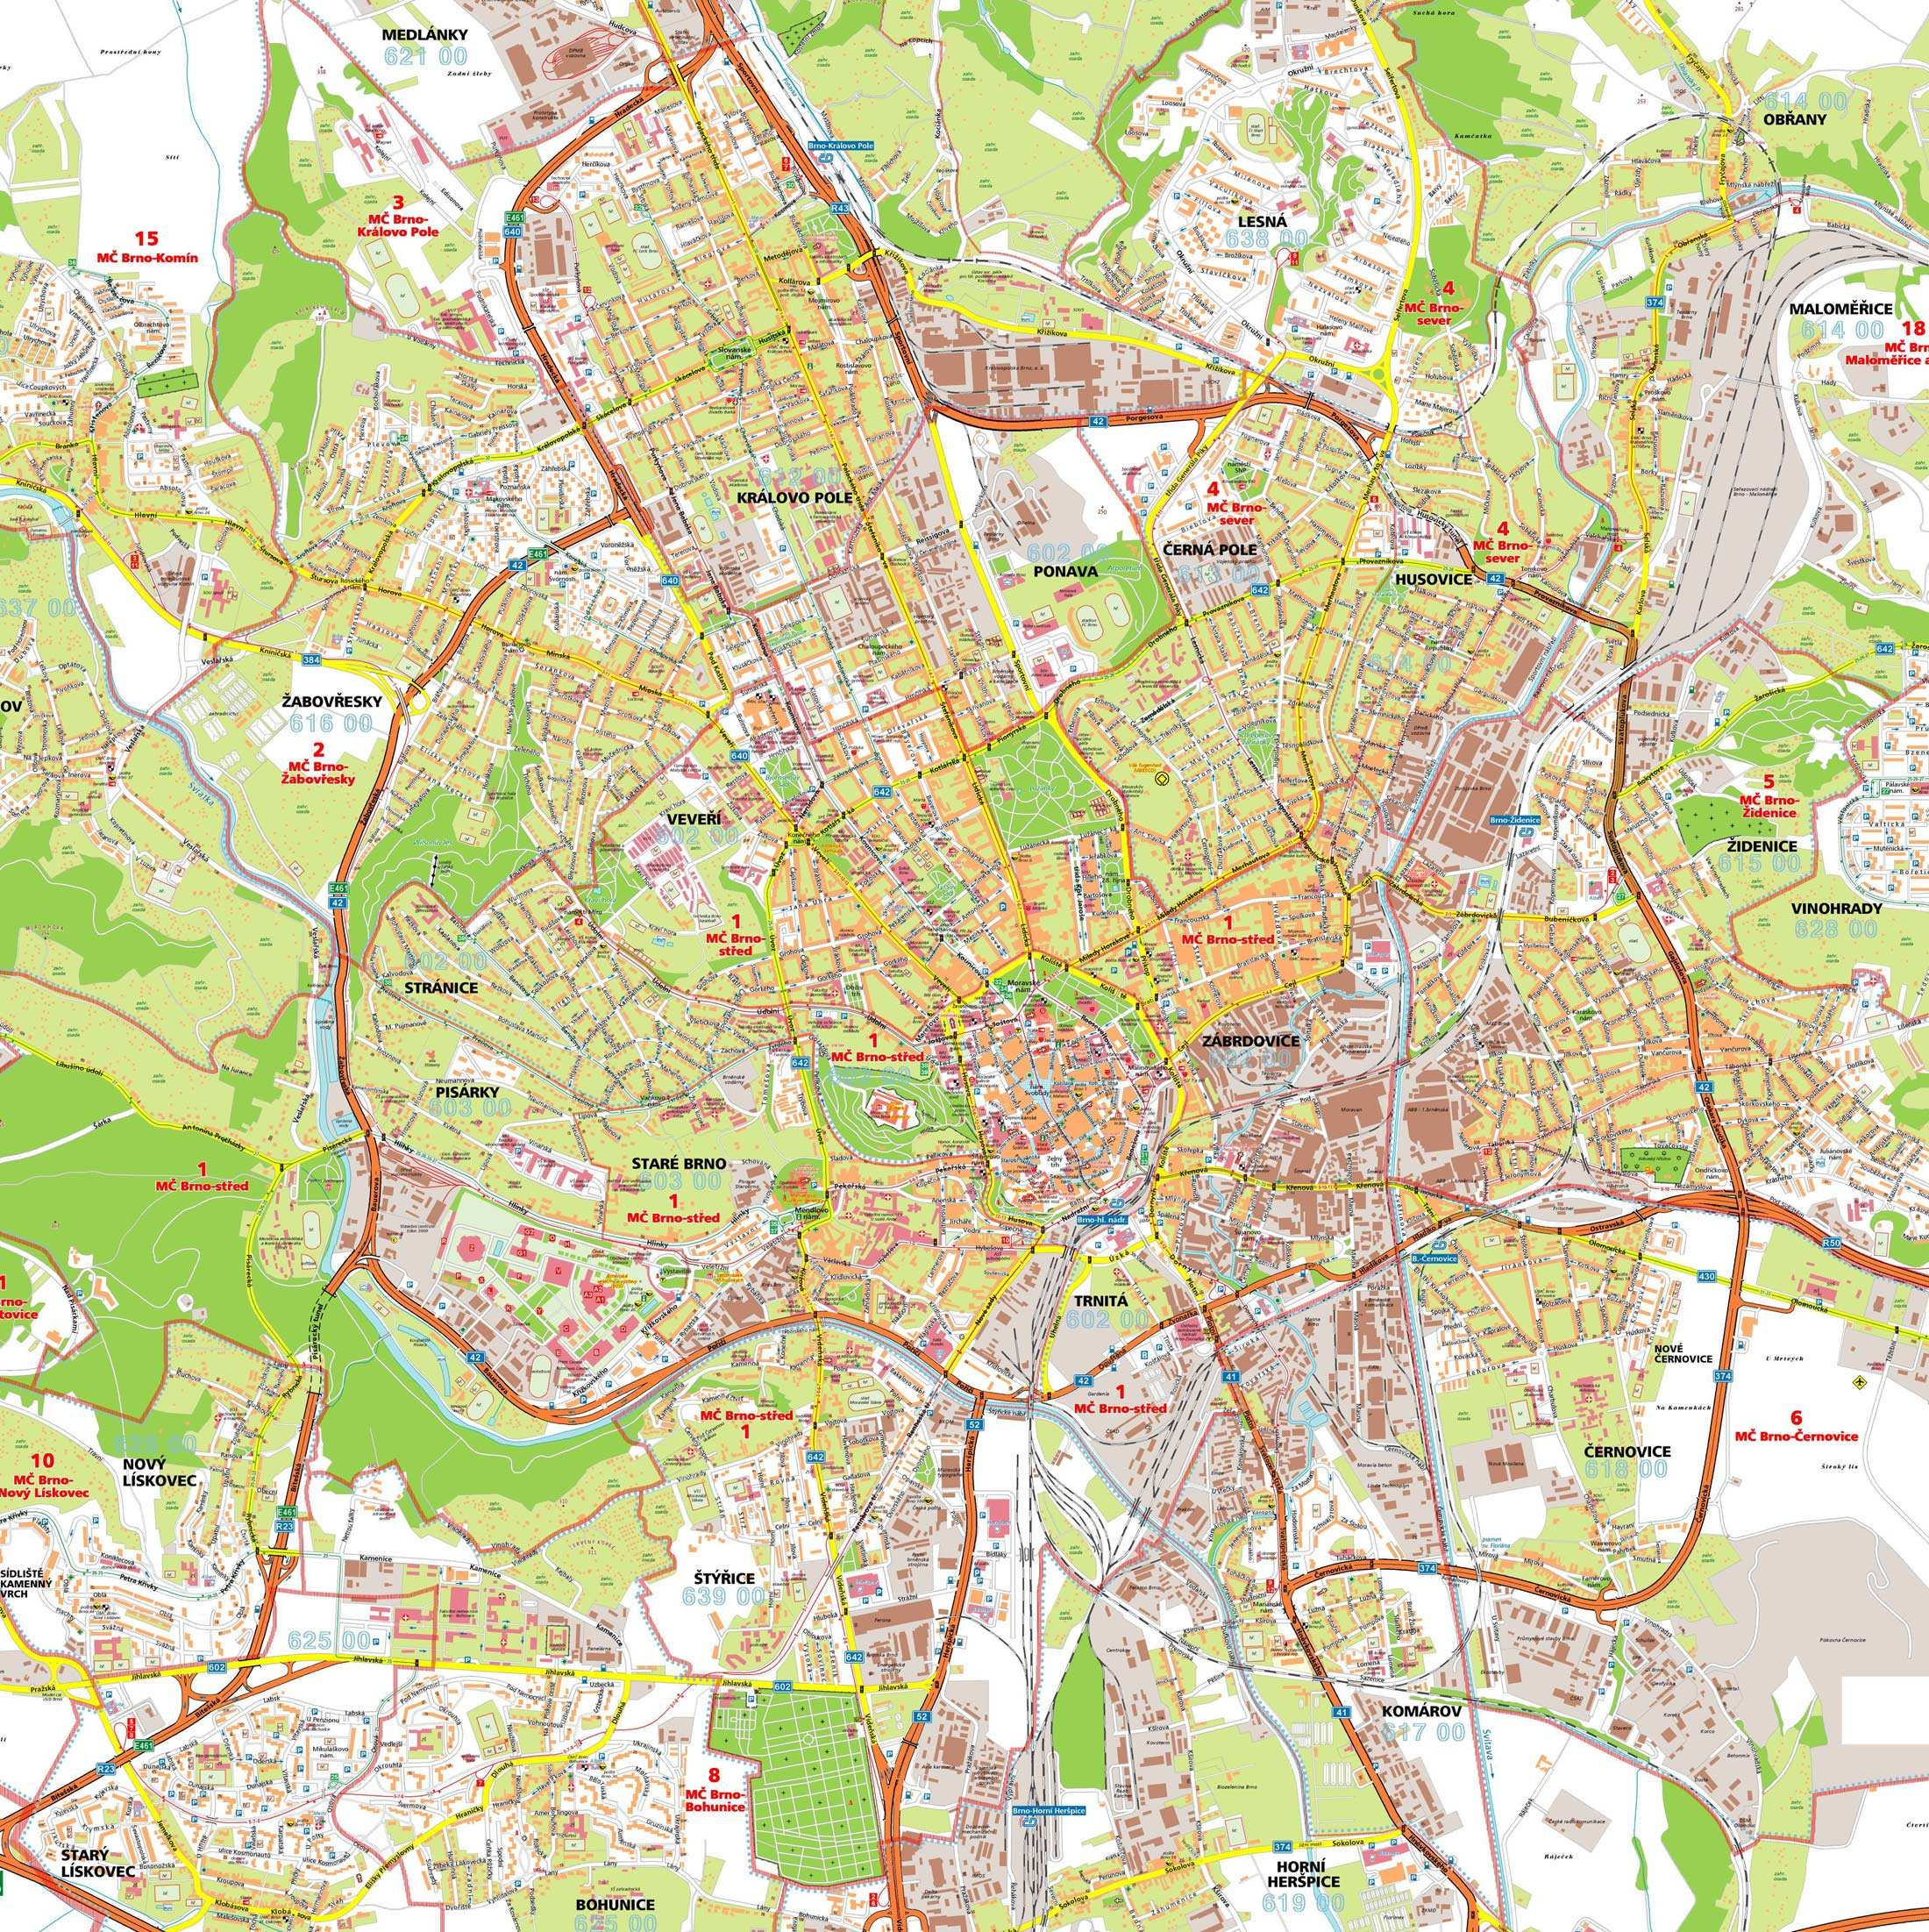 brno térkép Large Brno Maps for Free Download and Print | High Resolution and  brno térkép